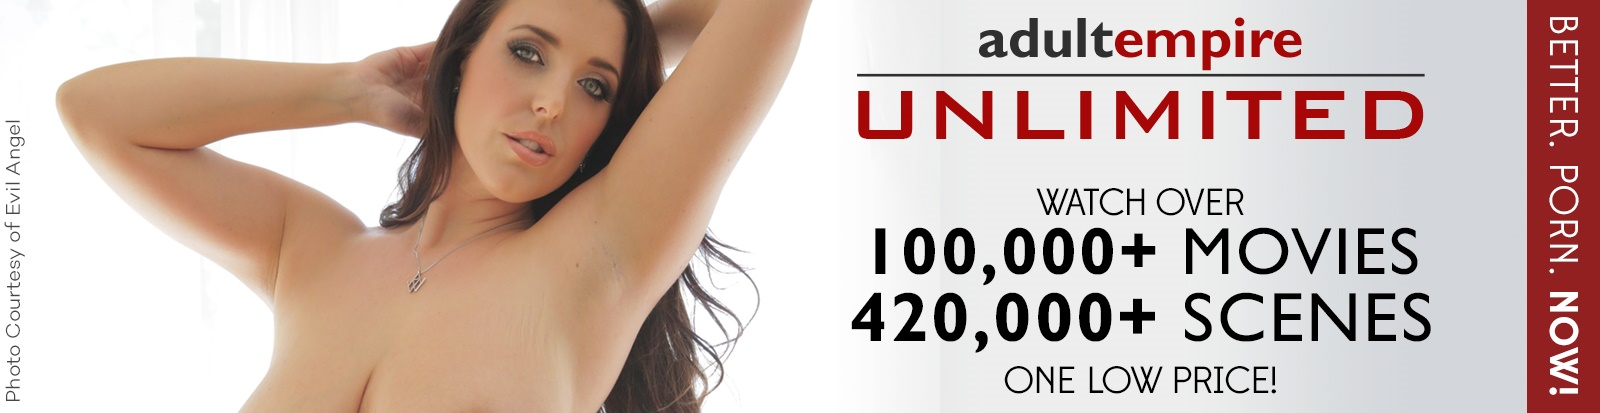 Join Adult Empire Unlimited